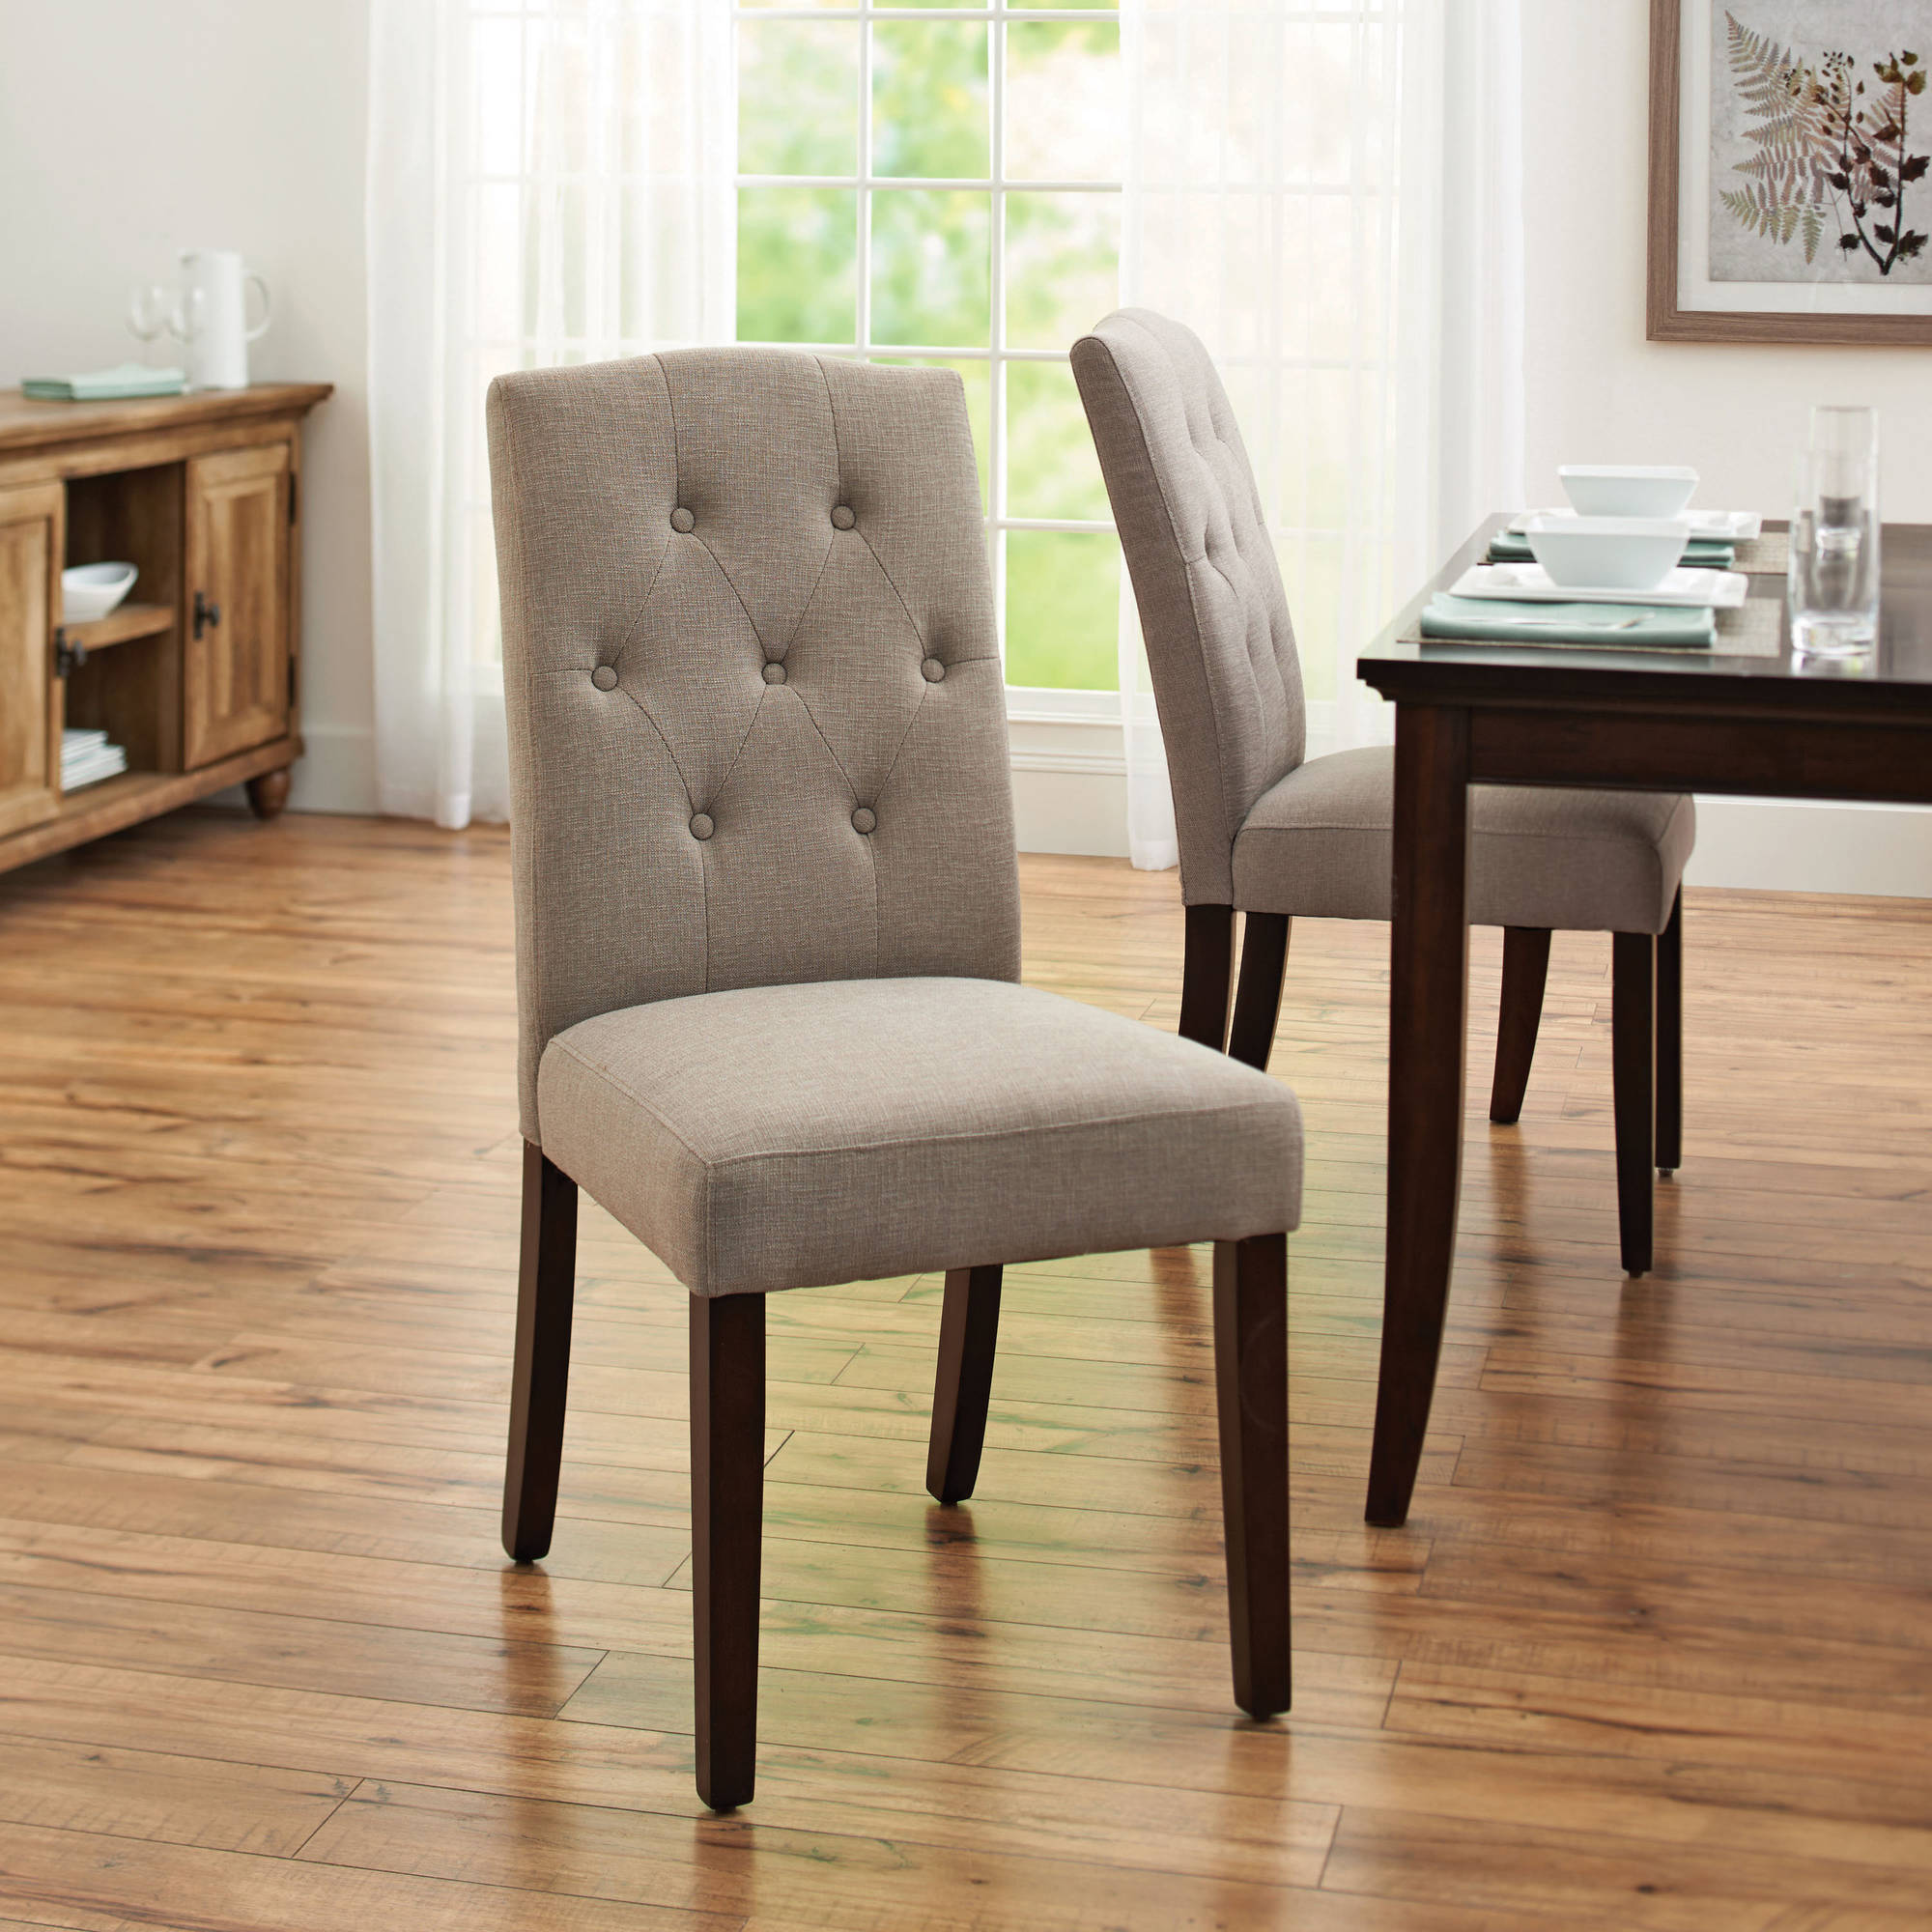 parsons dining chairs. better homes and gardens parsons tufted dining chair, taupe chairs i